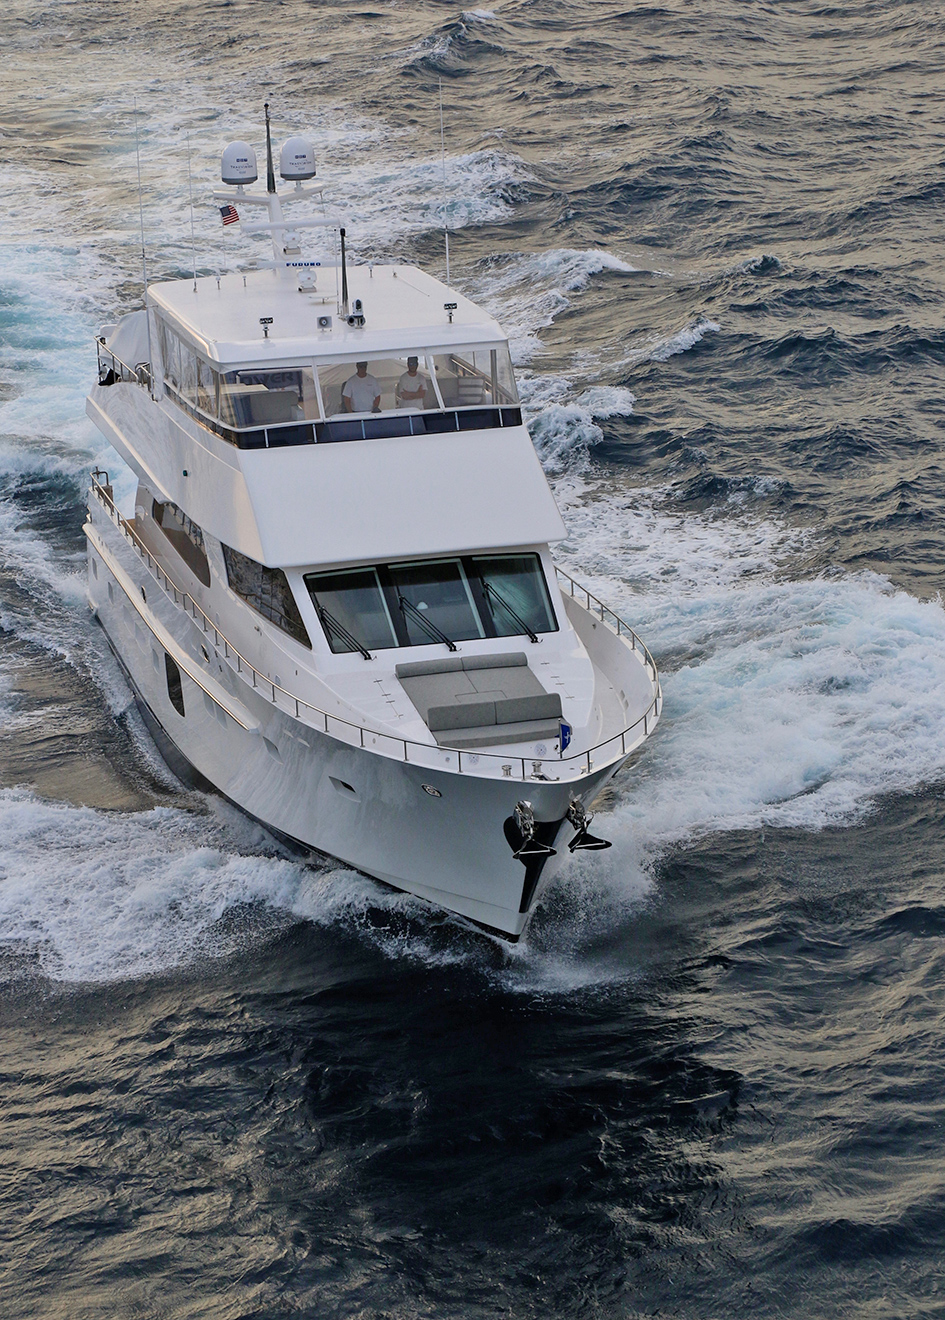 bow-running-shot-of-the-hargrave-custom-yacht-freedom